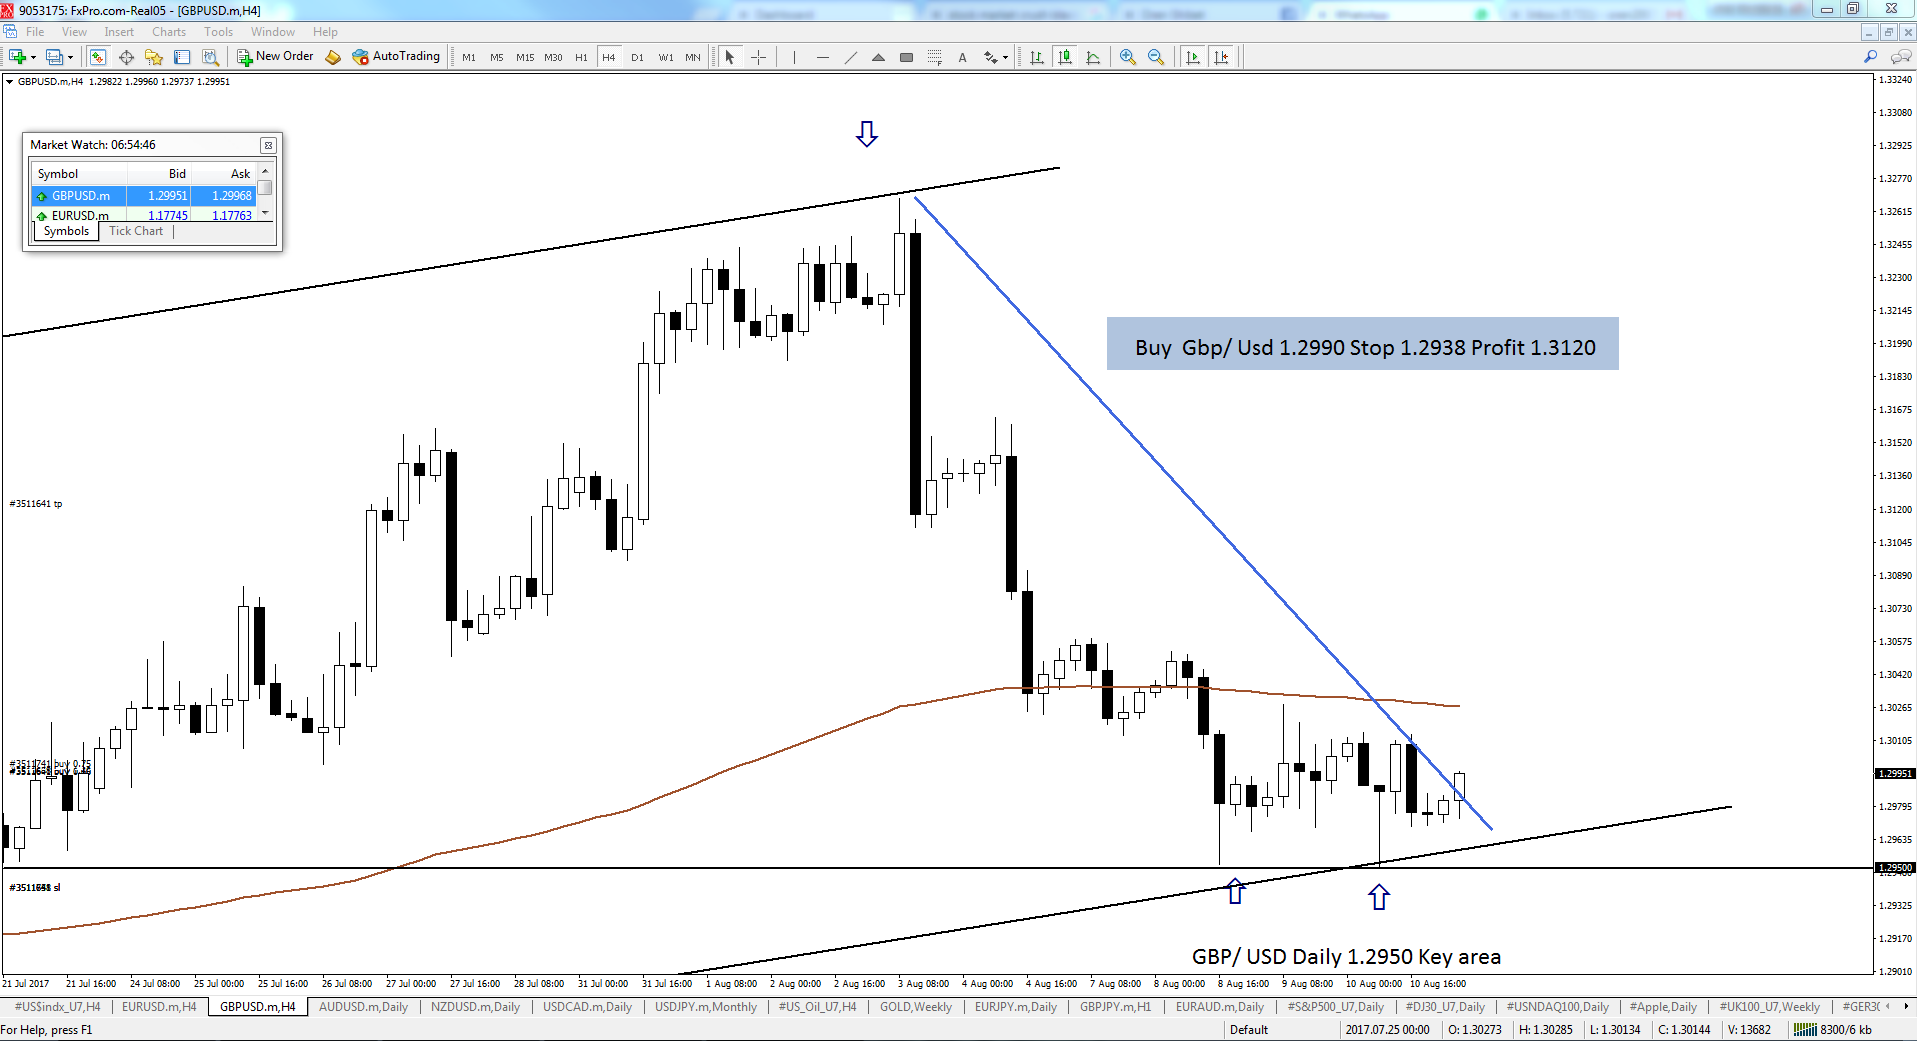 Live Signal Market Price Now Gbp Usd 1 2990 Stop 2938 Profit 3120 Hi Most Of The Time We Choose Not To Share Direct